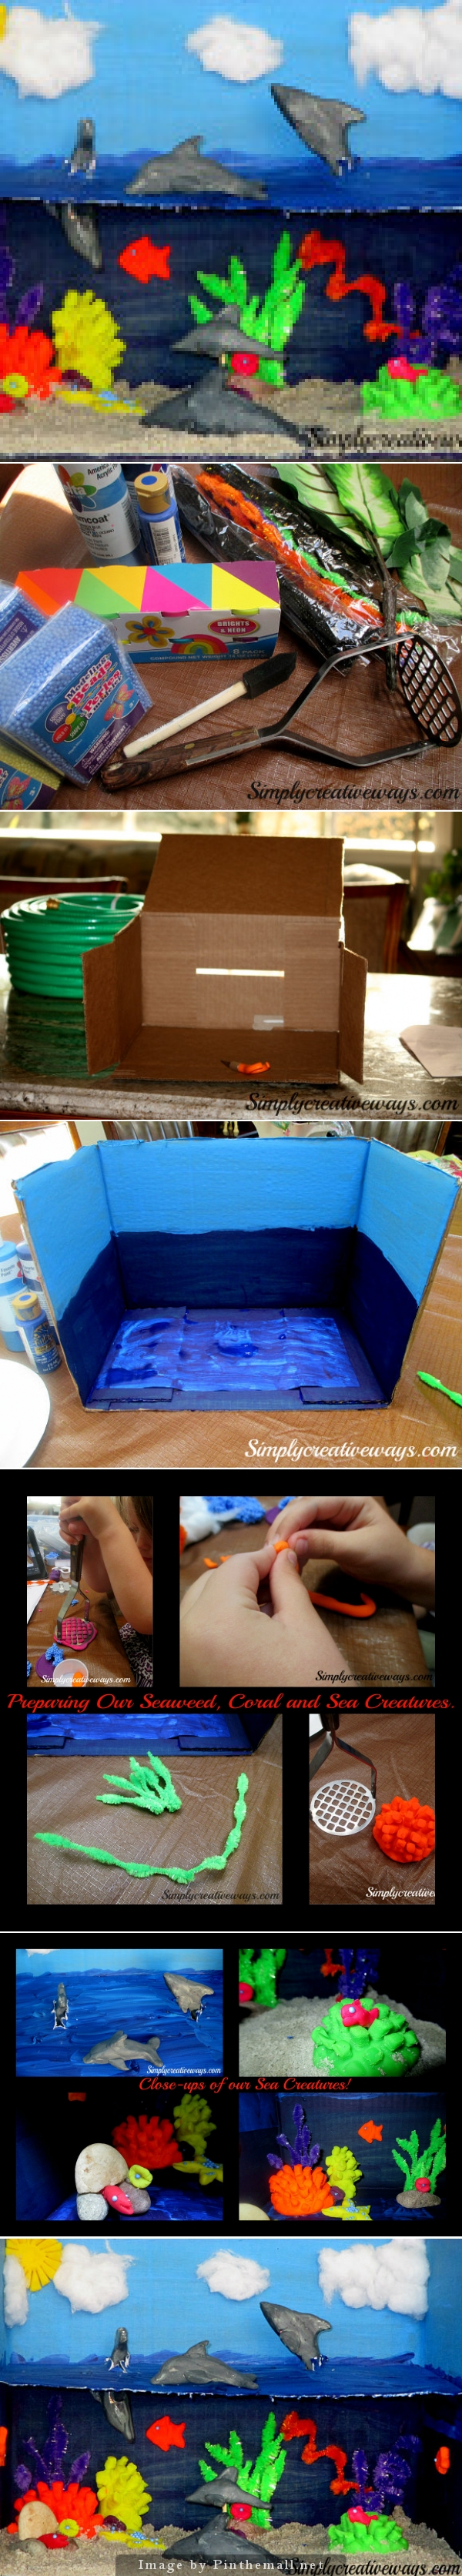 Kids Diorama With Details: Pin By D B On Stuff To Do With Kids Inside